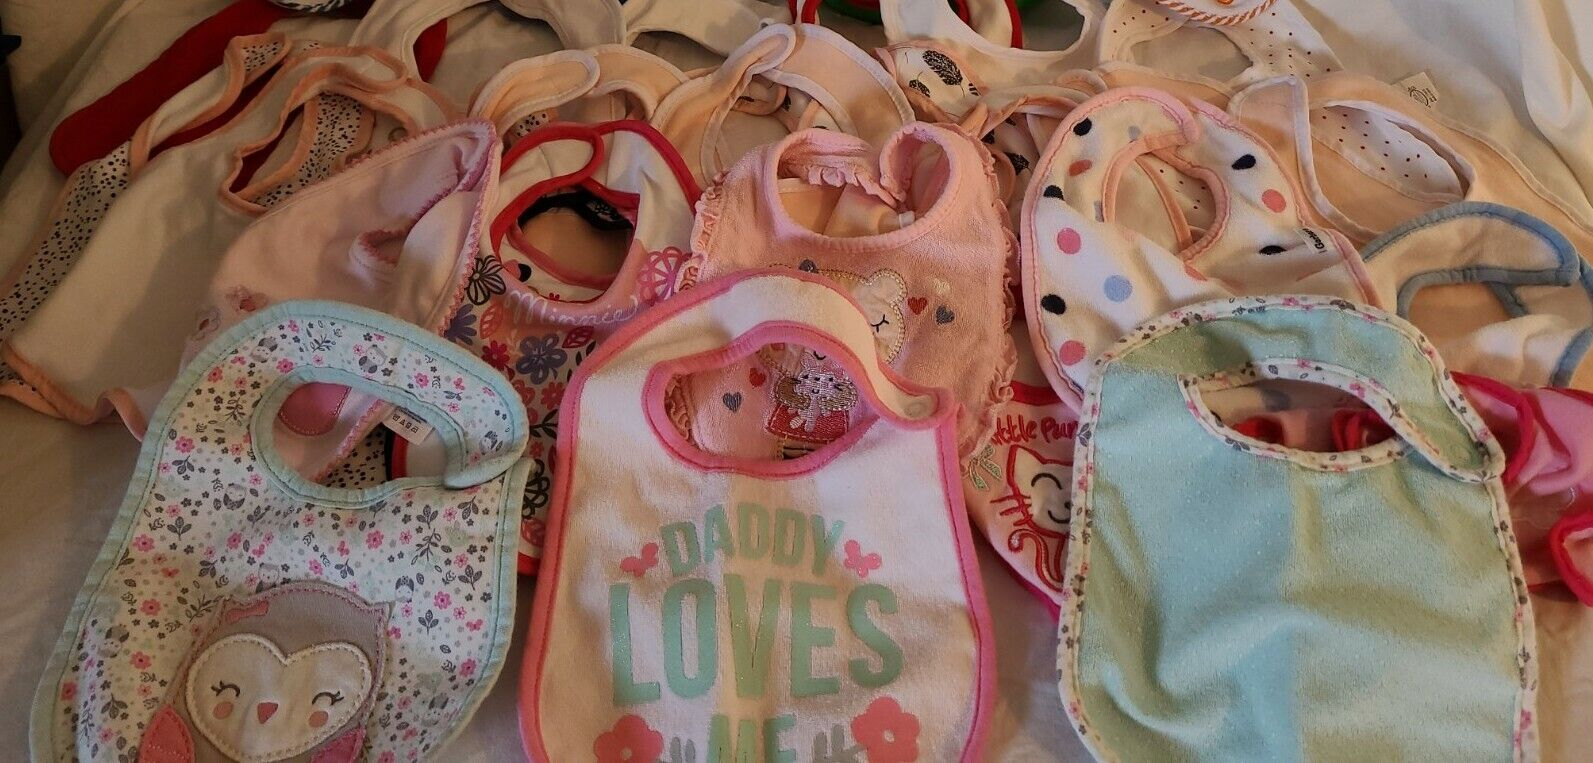 Lot Of Baby Girl Bibs In Multiple Styles W/ Over 30 Bibs In Excellent Condition - $16.80